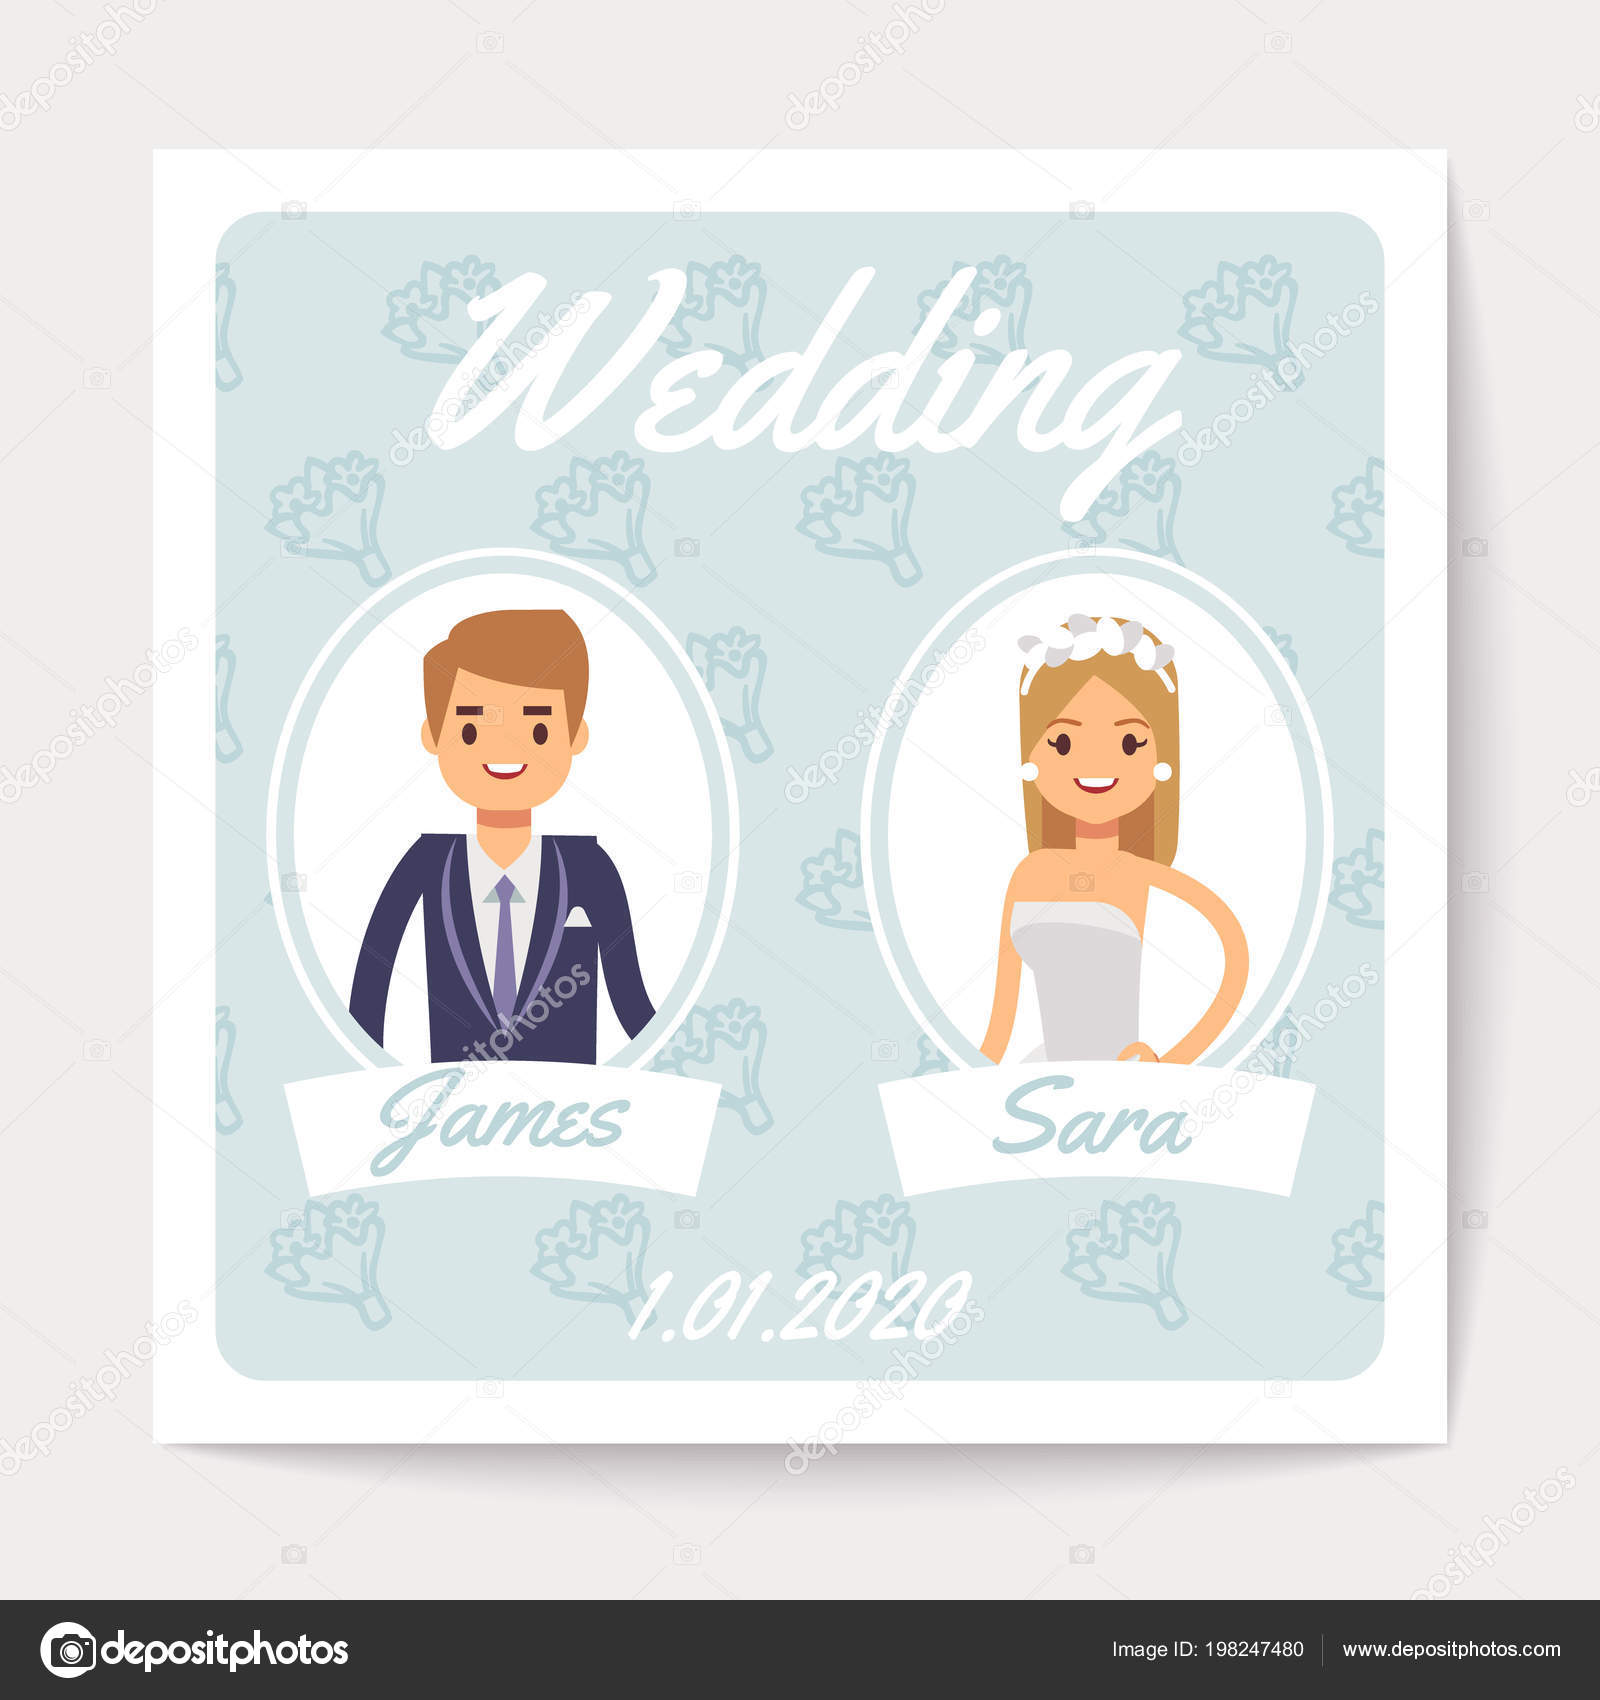 Wedding invitation vector card with happy married couple cartoon wedding invitation vector card with happy married couple cartoon bride and groom stock vector stopboris Image collections